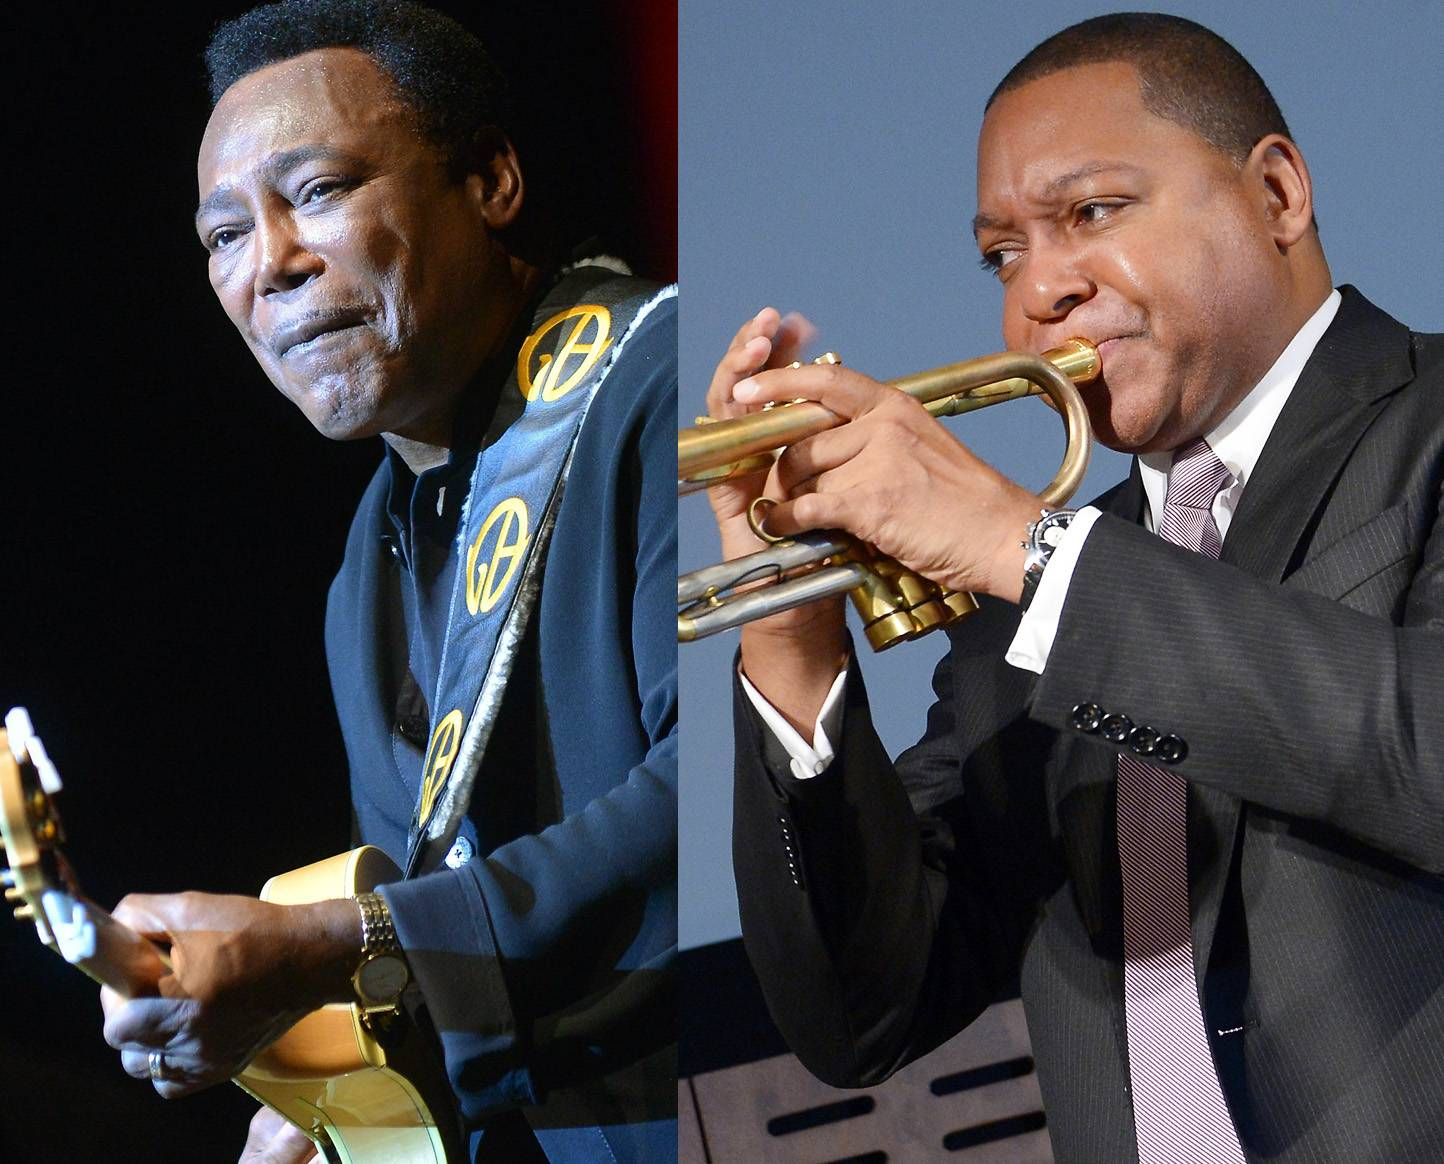 """Best Traditional Jazz Performance: George Benson feat. Wynton Marsalis - """"Unforgettable"""" - Paying musical homage to the late Nat King Cole, George Benson?s cover of ?Unforgettable? featuring the noted jazz trumpeter Wynton Marsalis, was just that. (Photos from left: EPA/Britta Pedersen /LANDOV, Michael Loccisano/Getty Images for HBO)"""